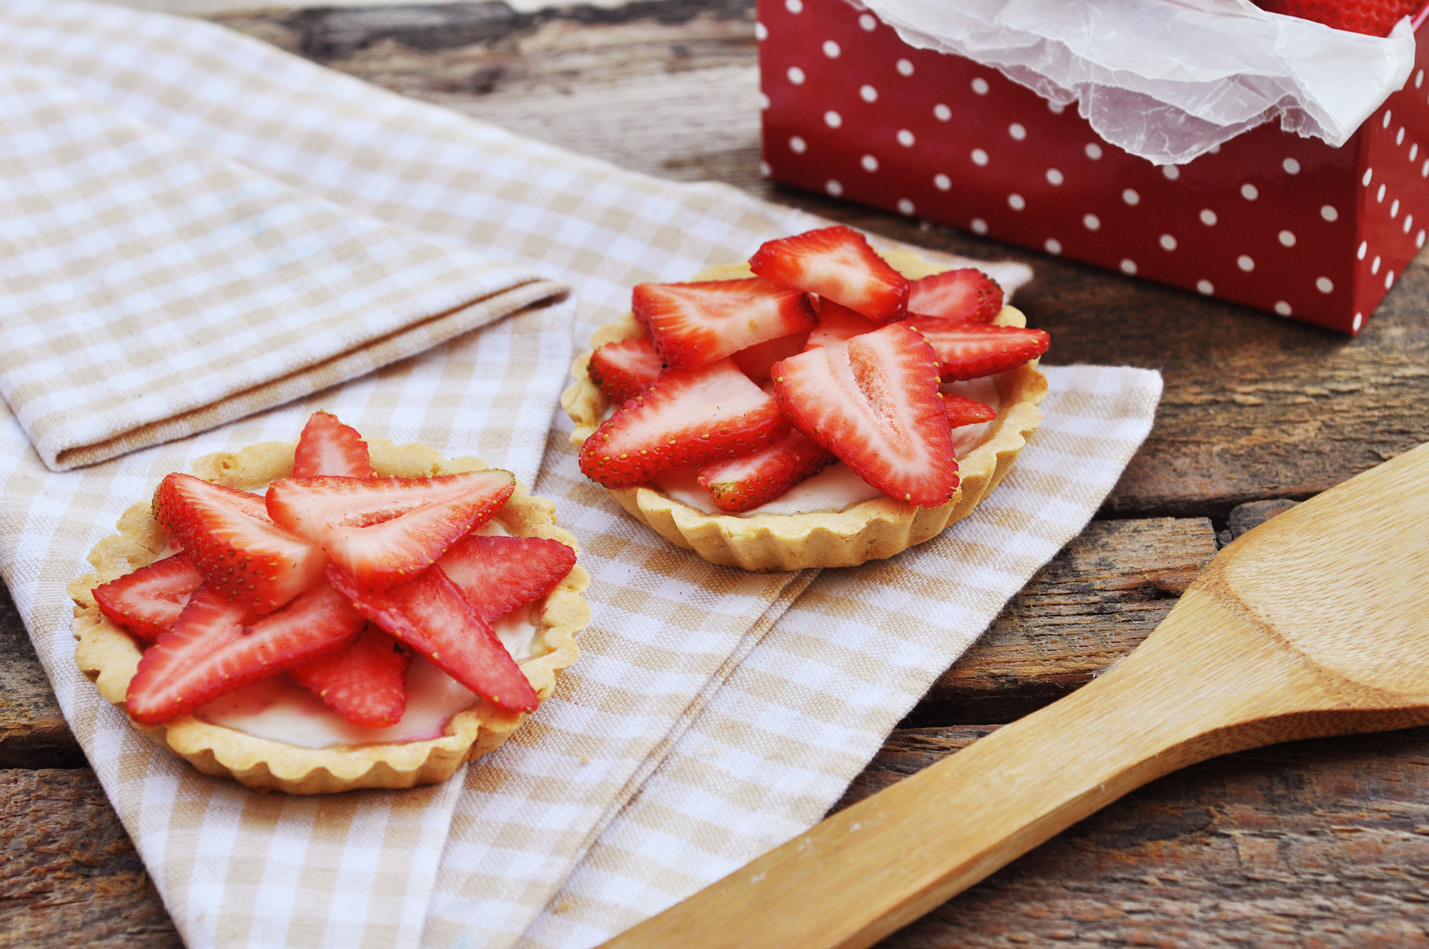 Anja's Food 4 Thought: Baked Yogurt Tartlets with Strawberries